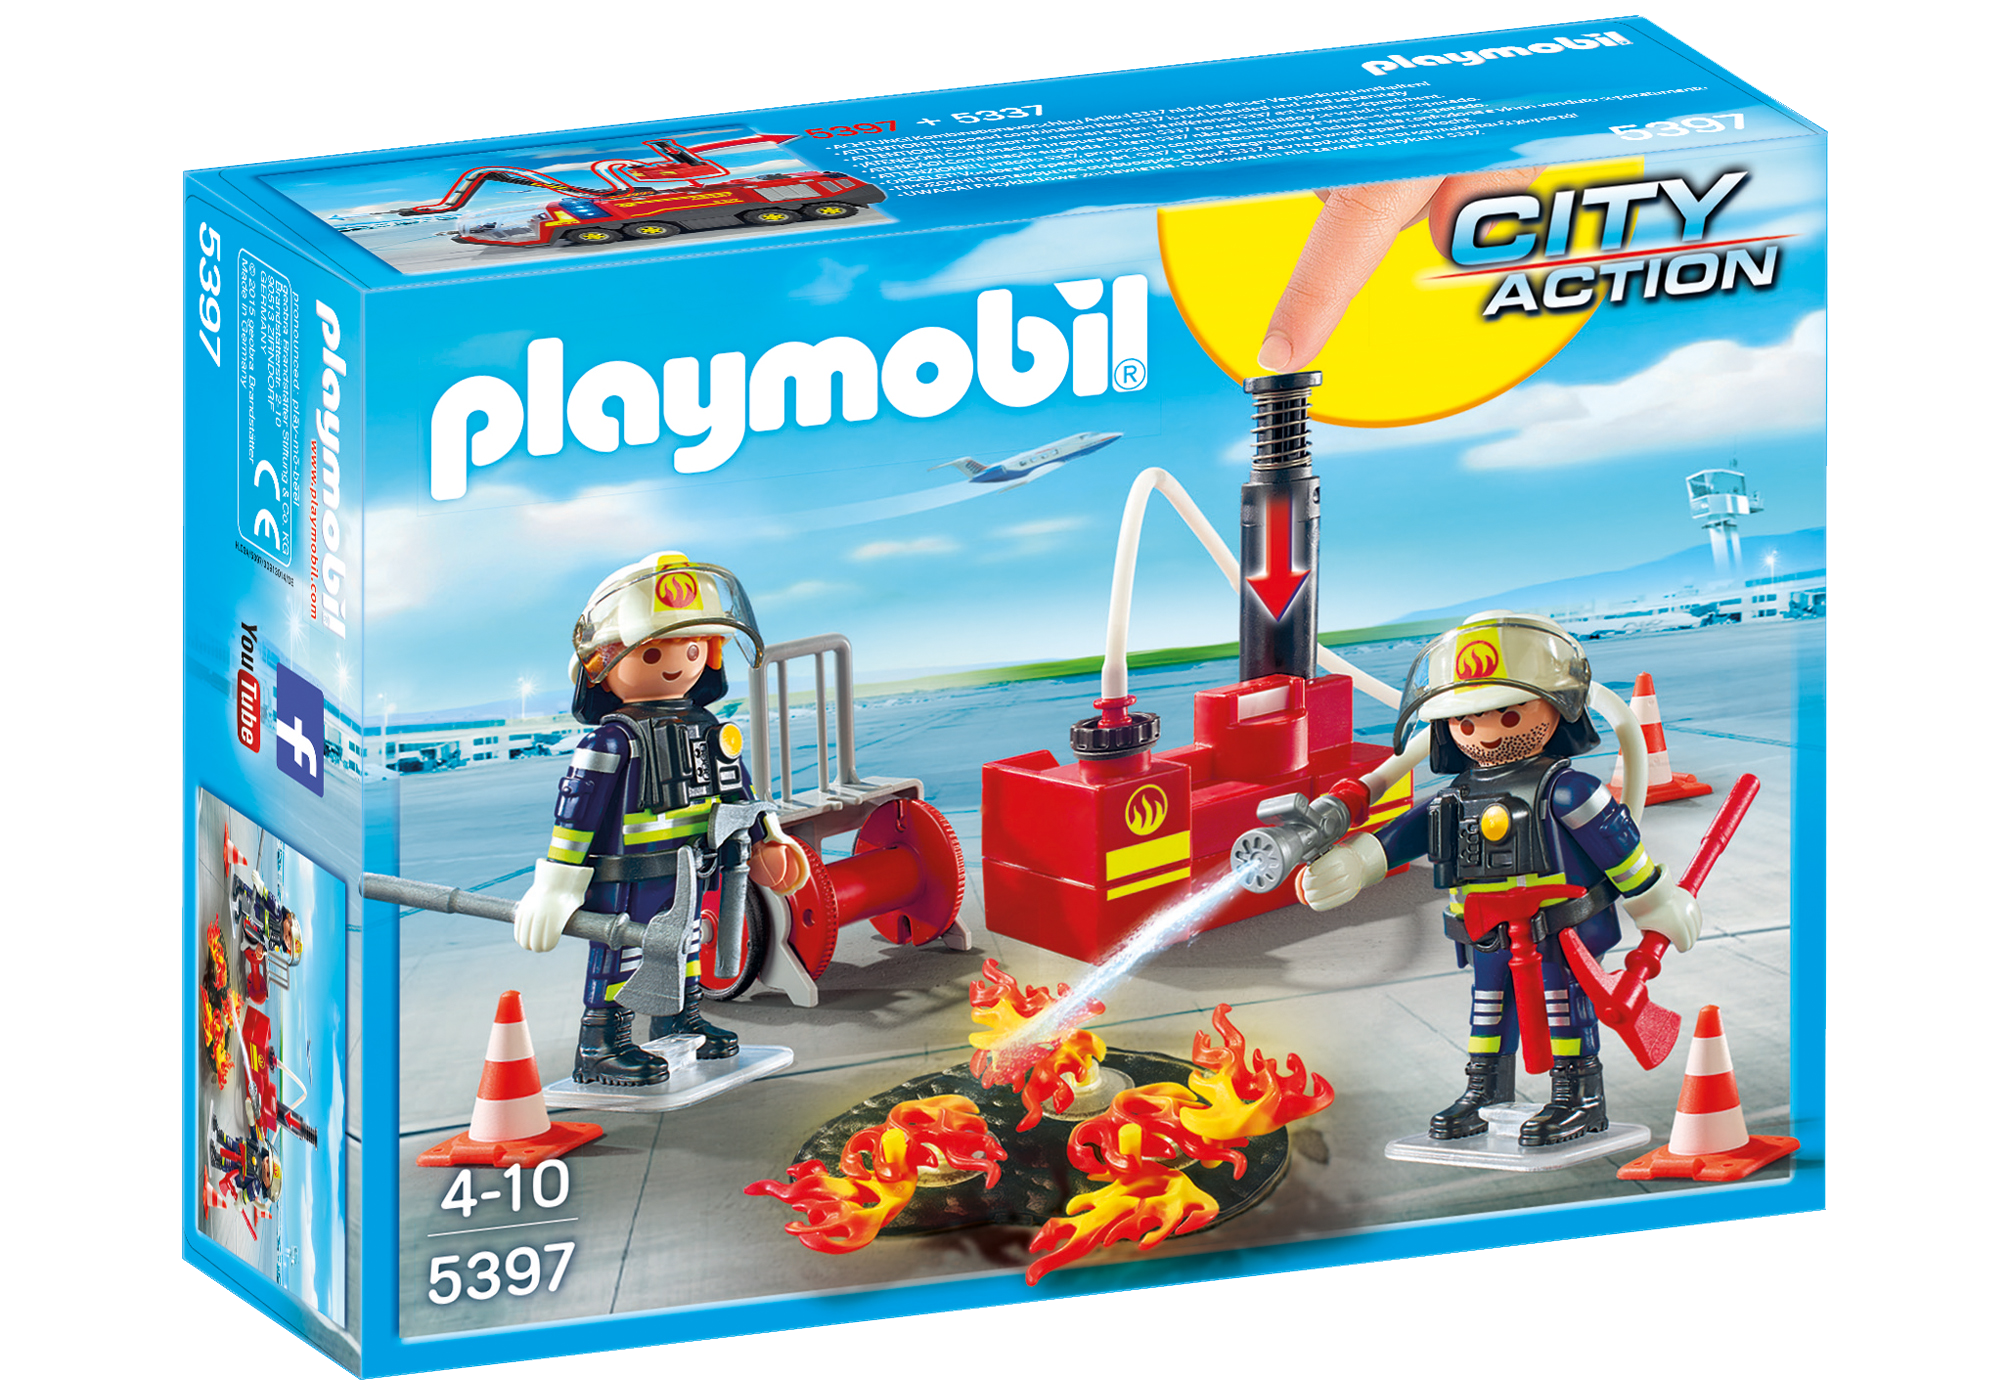 http://media.playmobil.com/i/playmobil/5397_product_box_front